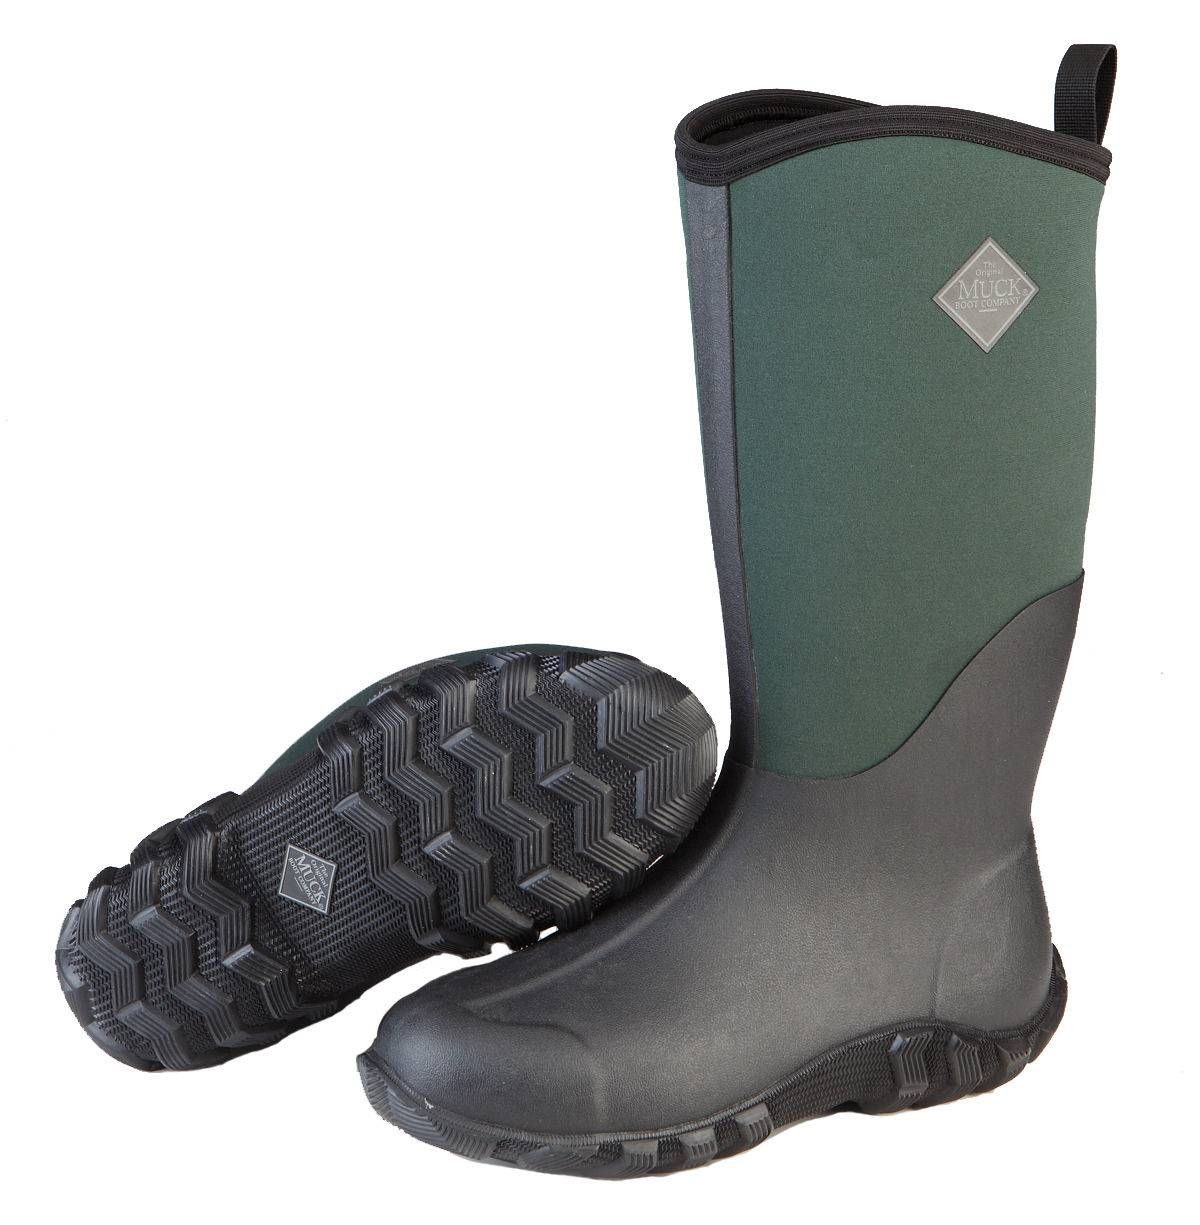 Muck Boots Men's Edgewater II - Mens - Green